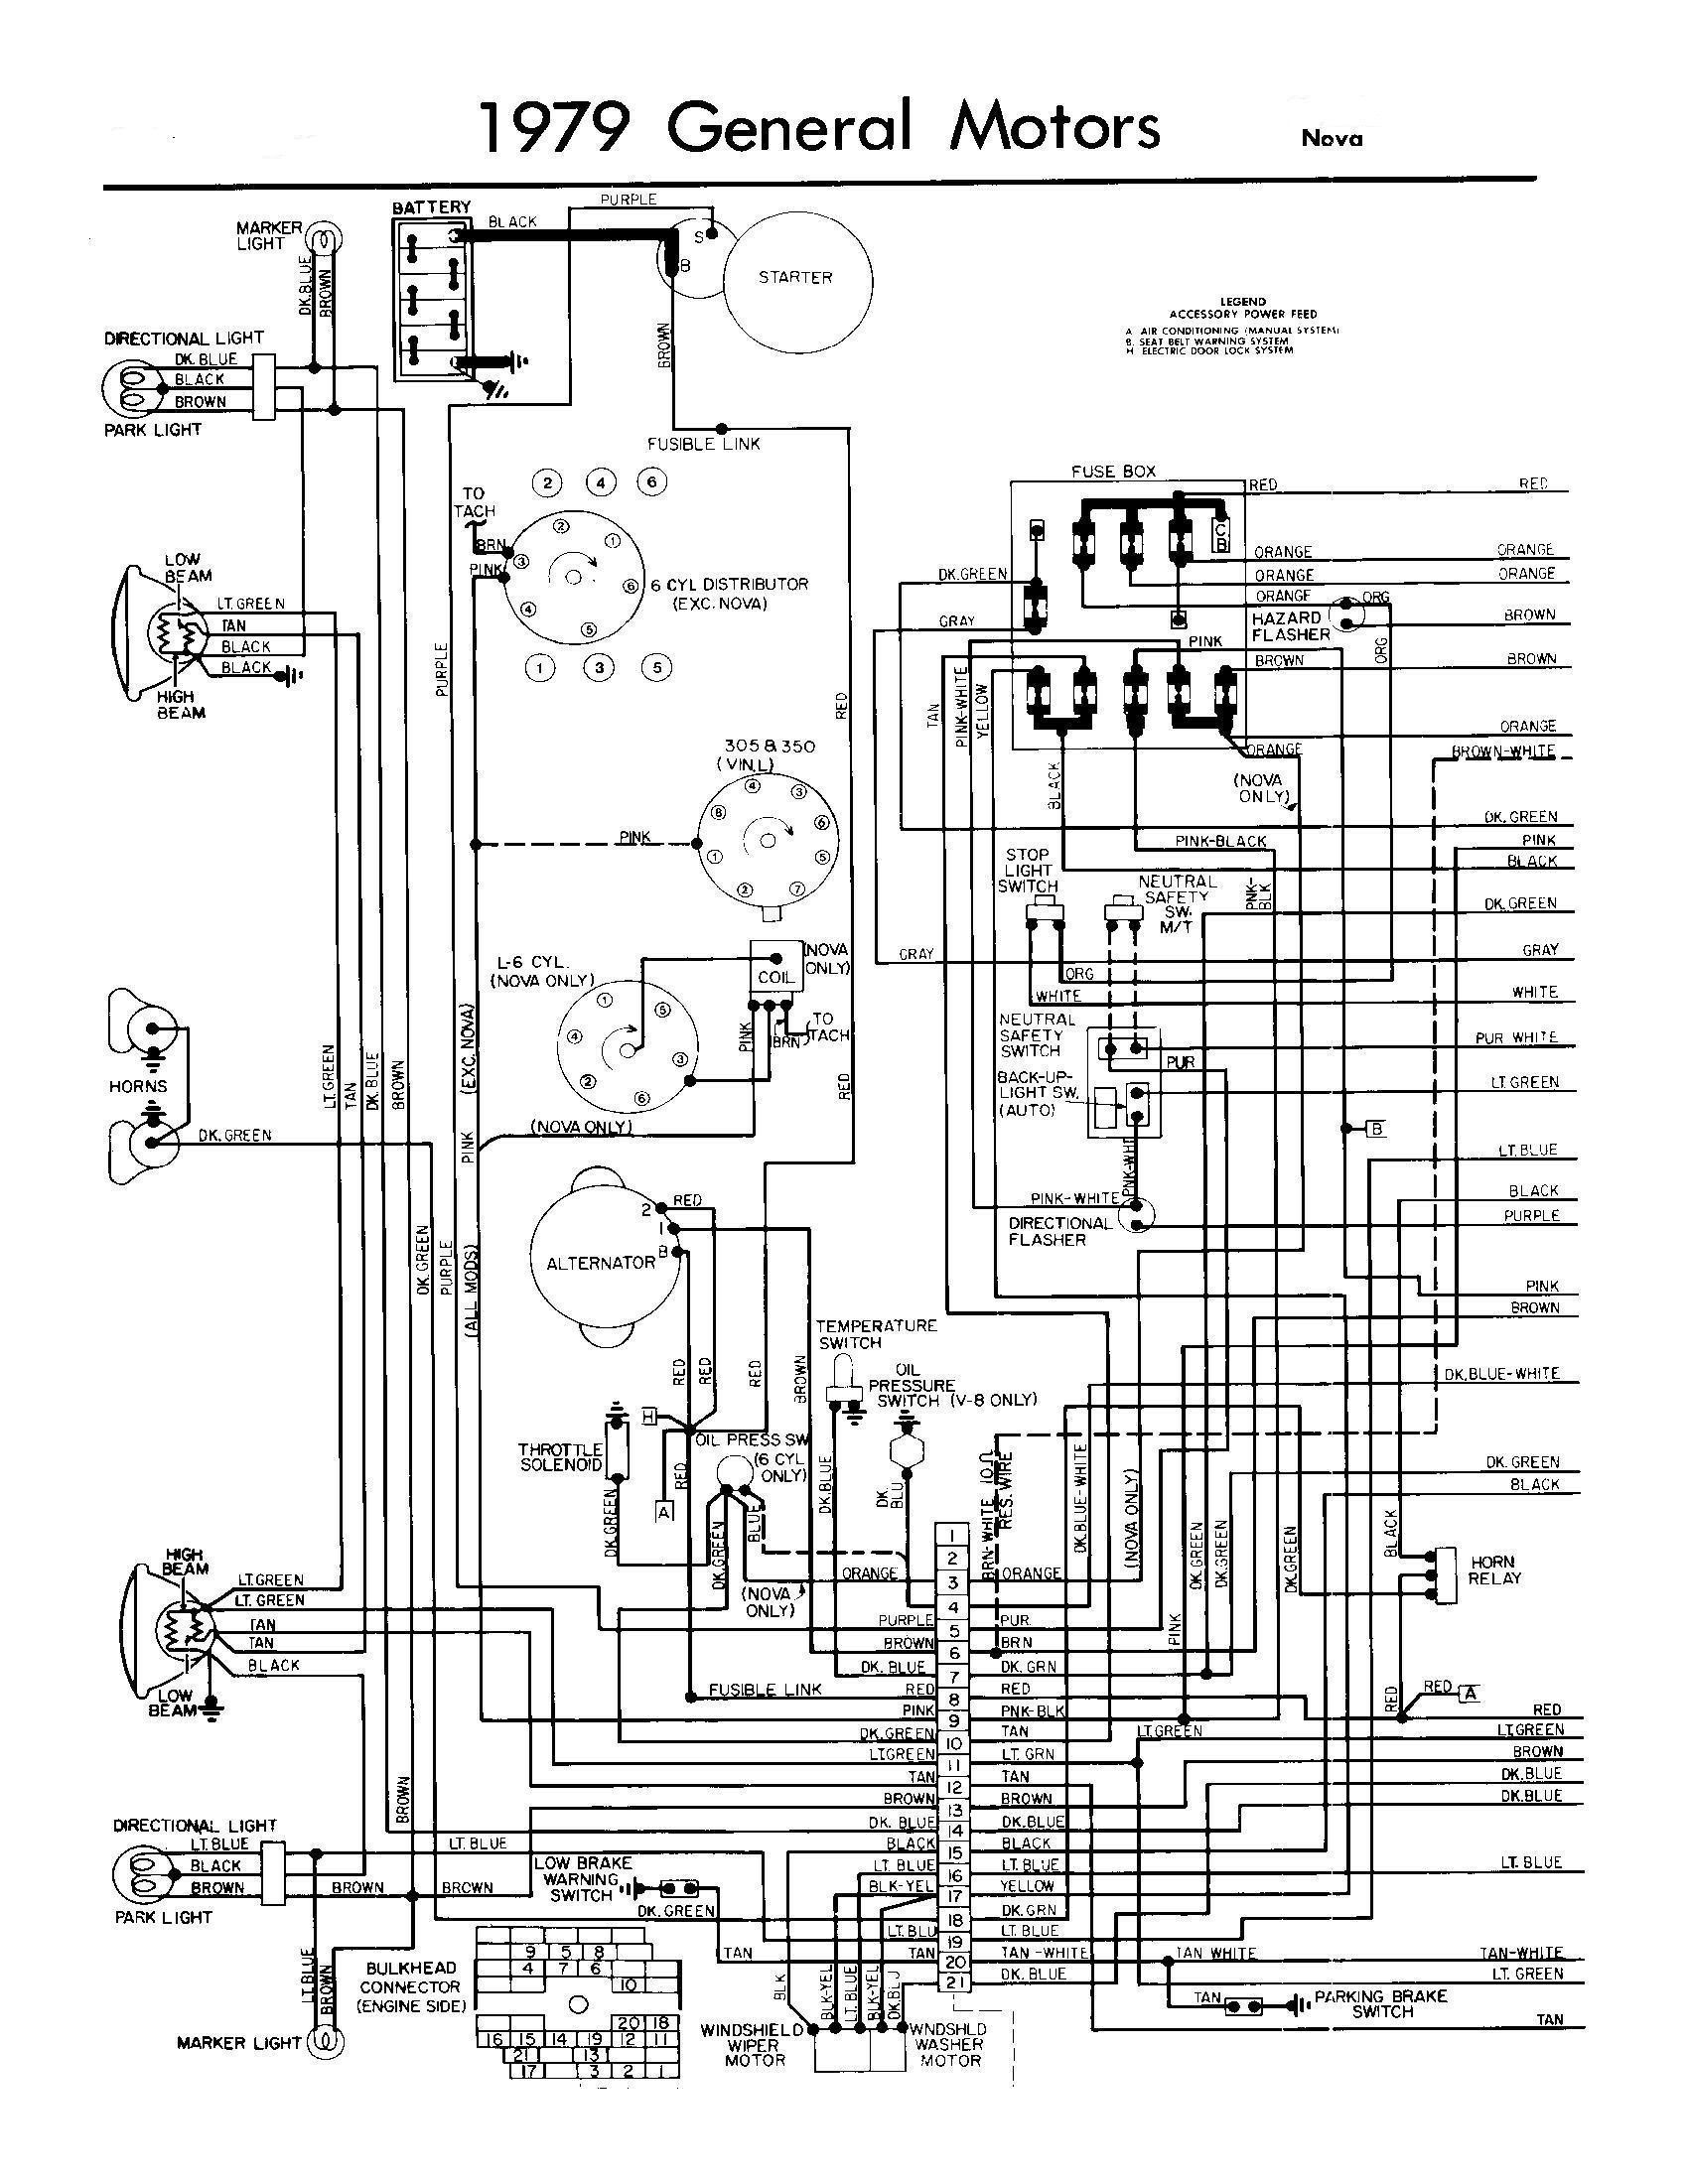 [SCHEMATICS_4US]  1985 Chevy Wiring Diagram | Wiring Diagram | 1985 Chevy Truck Fuse Diagram |  | Wiring Diagram - AutoScout24